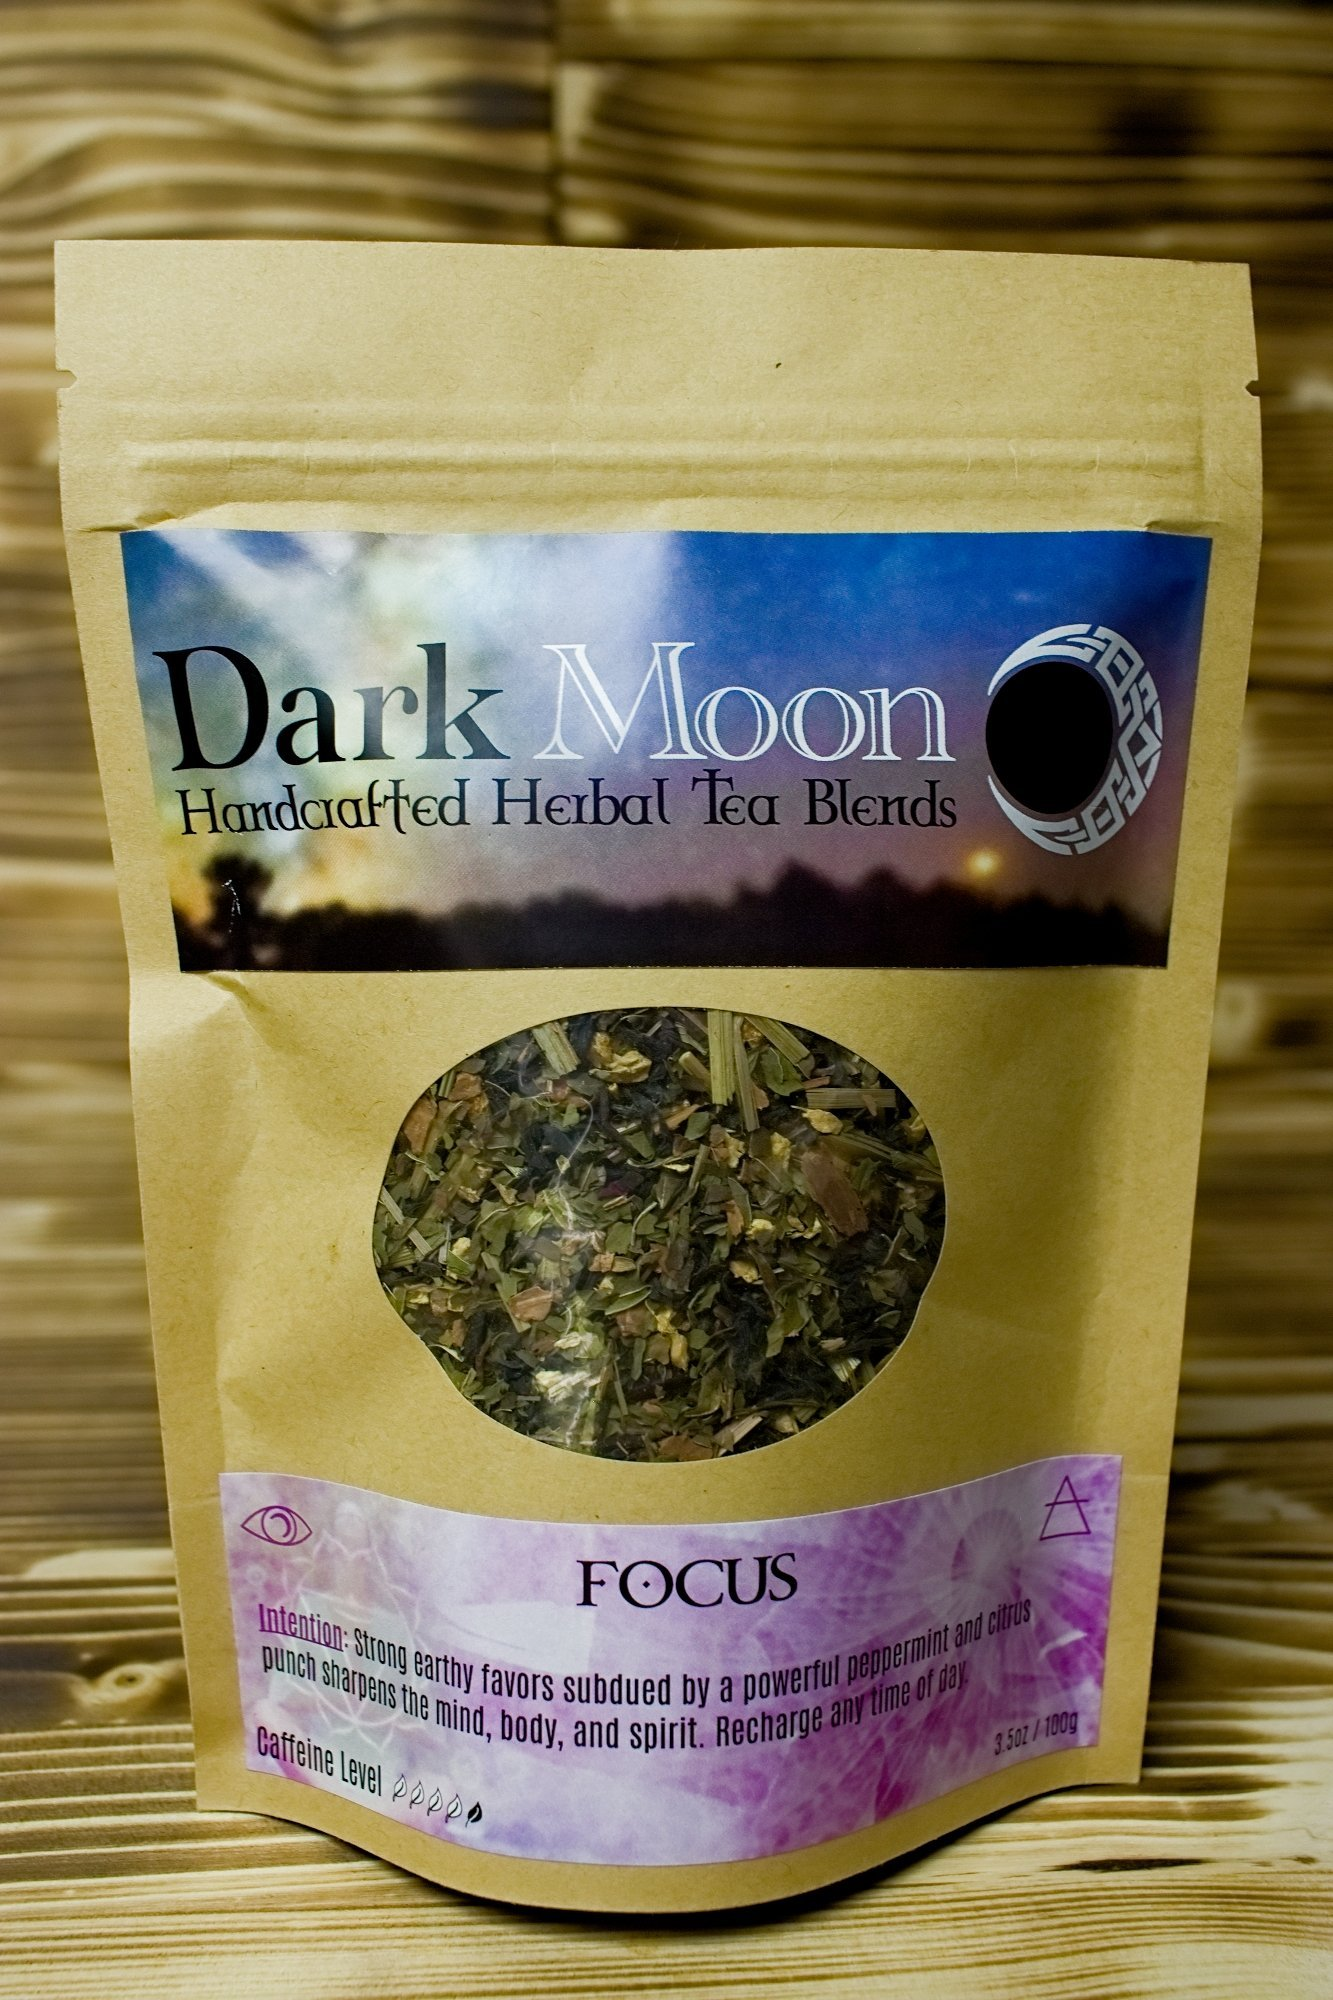 Dark Moon Teas – Focus